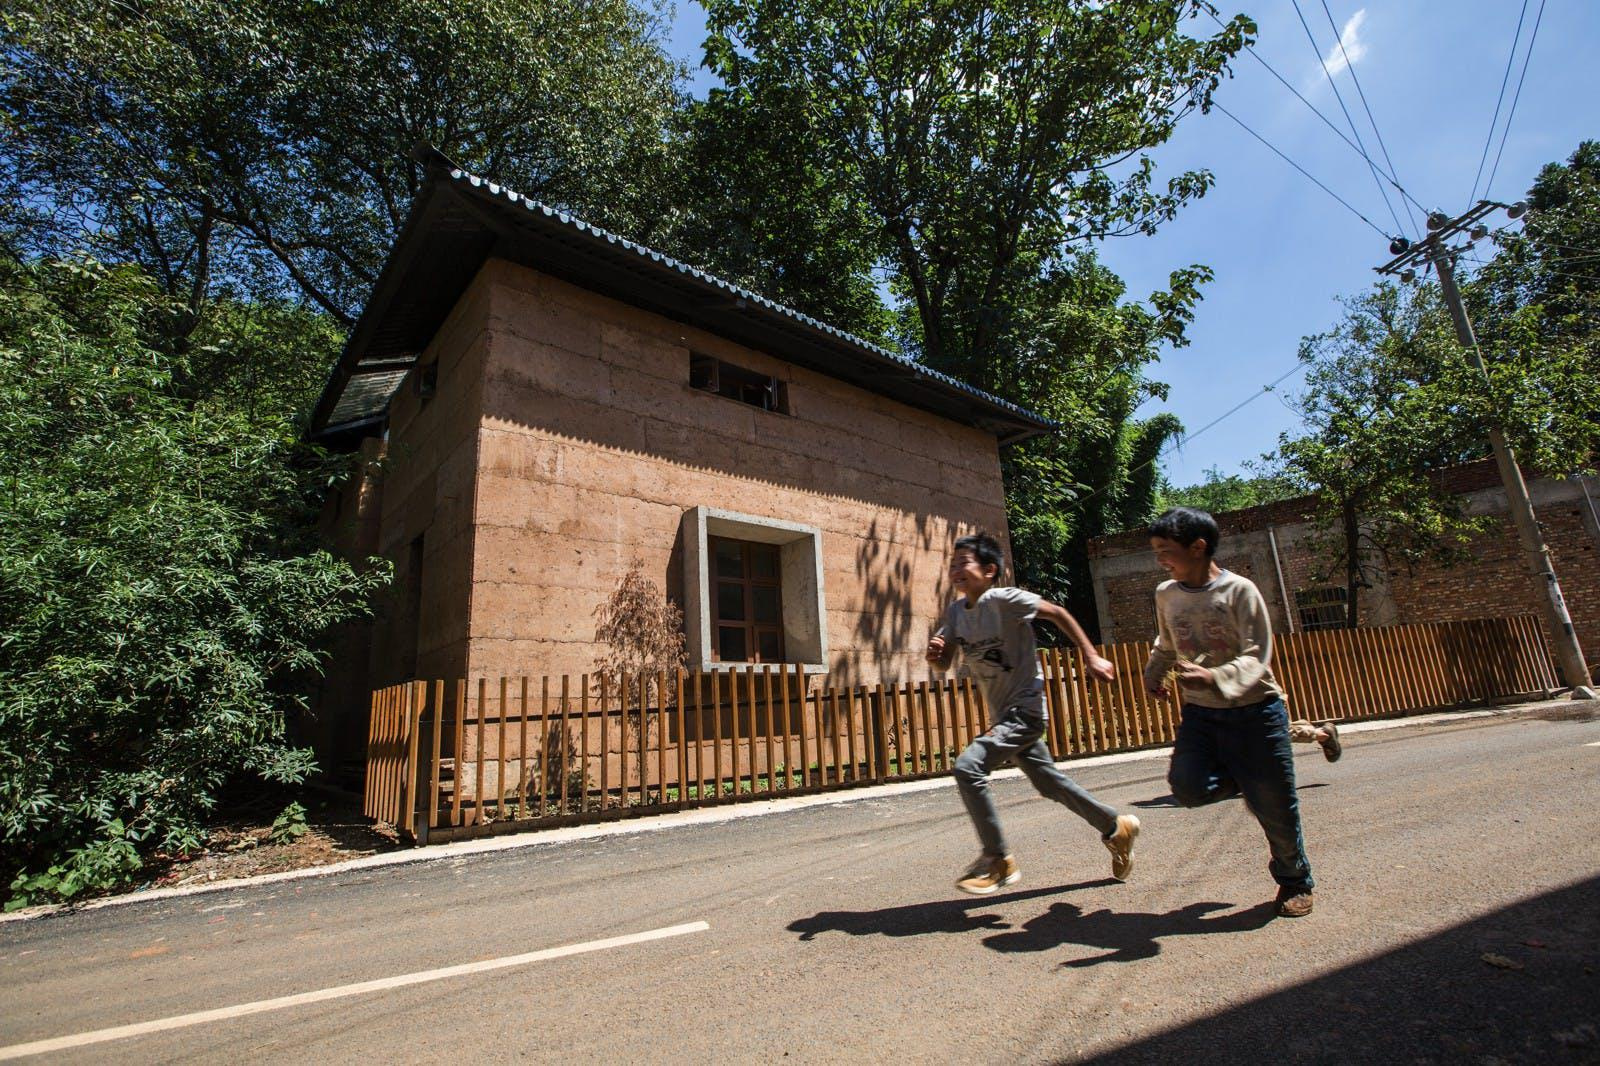 World Building of the Year 2017: The Chinese University of Hong Kong, Post-earthquake reconstruction/demonstration project of Guangming Village, Zhaotong, China